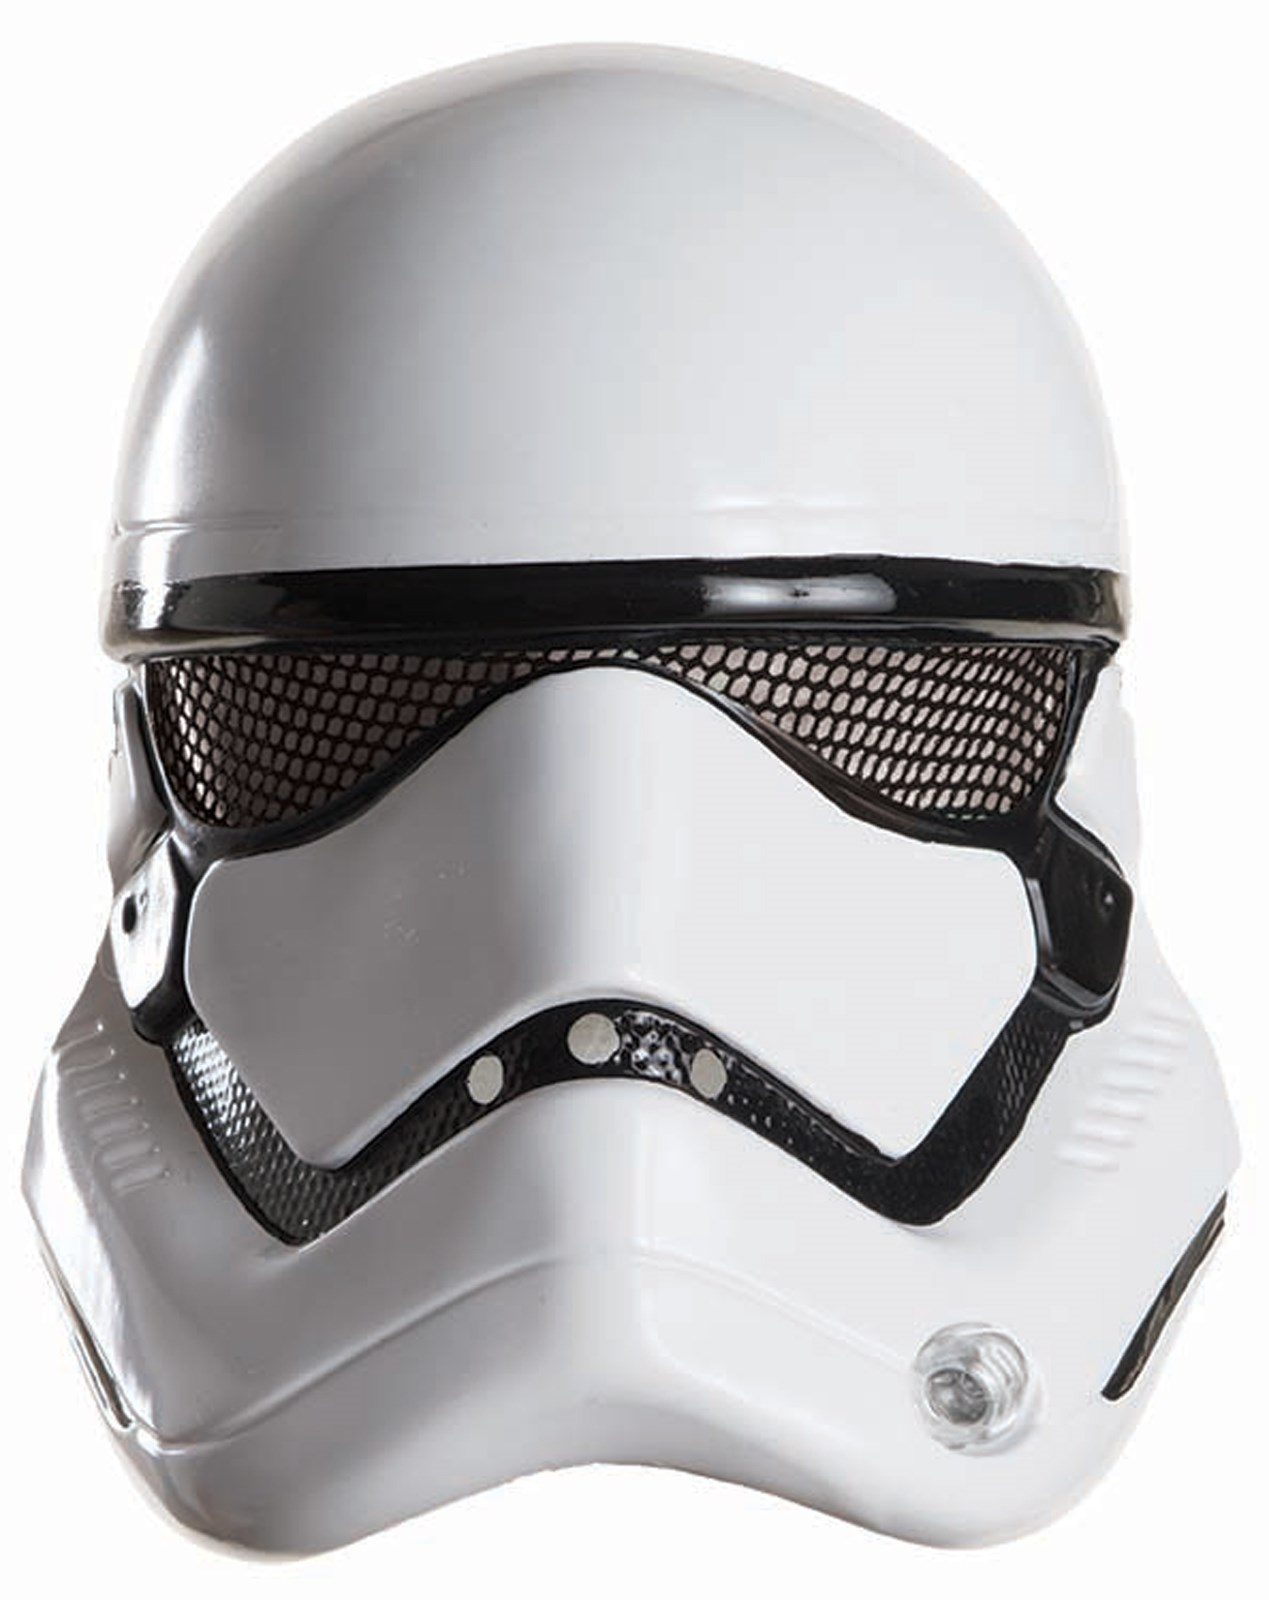 Star Wars:  The Force Awakens - Stormtrooper Half Helmet For Men